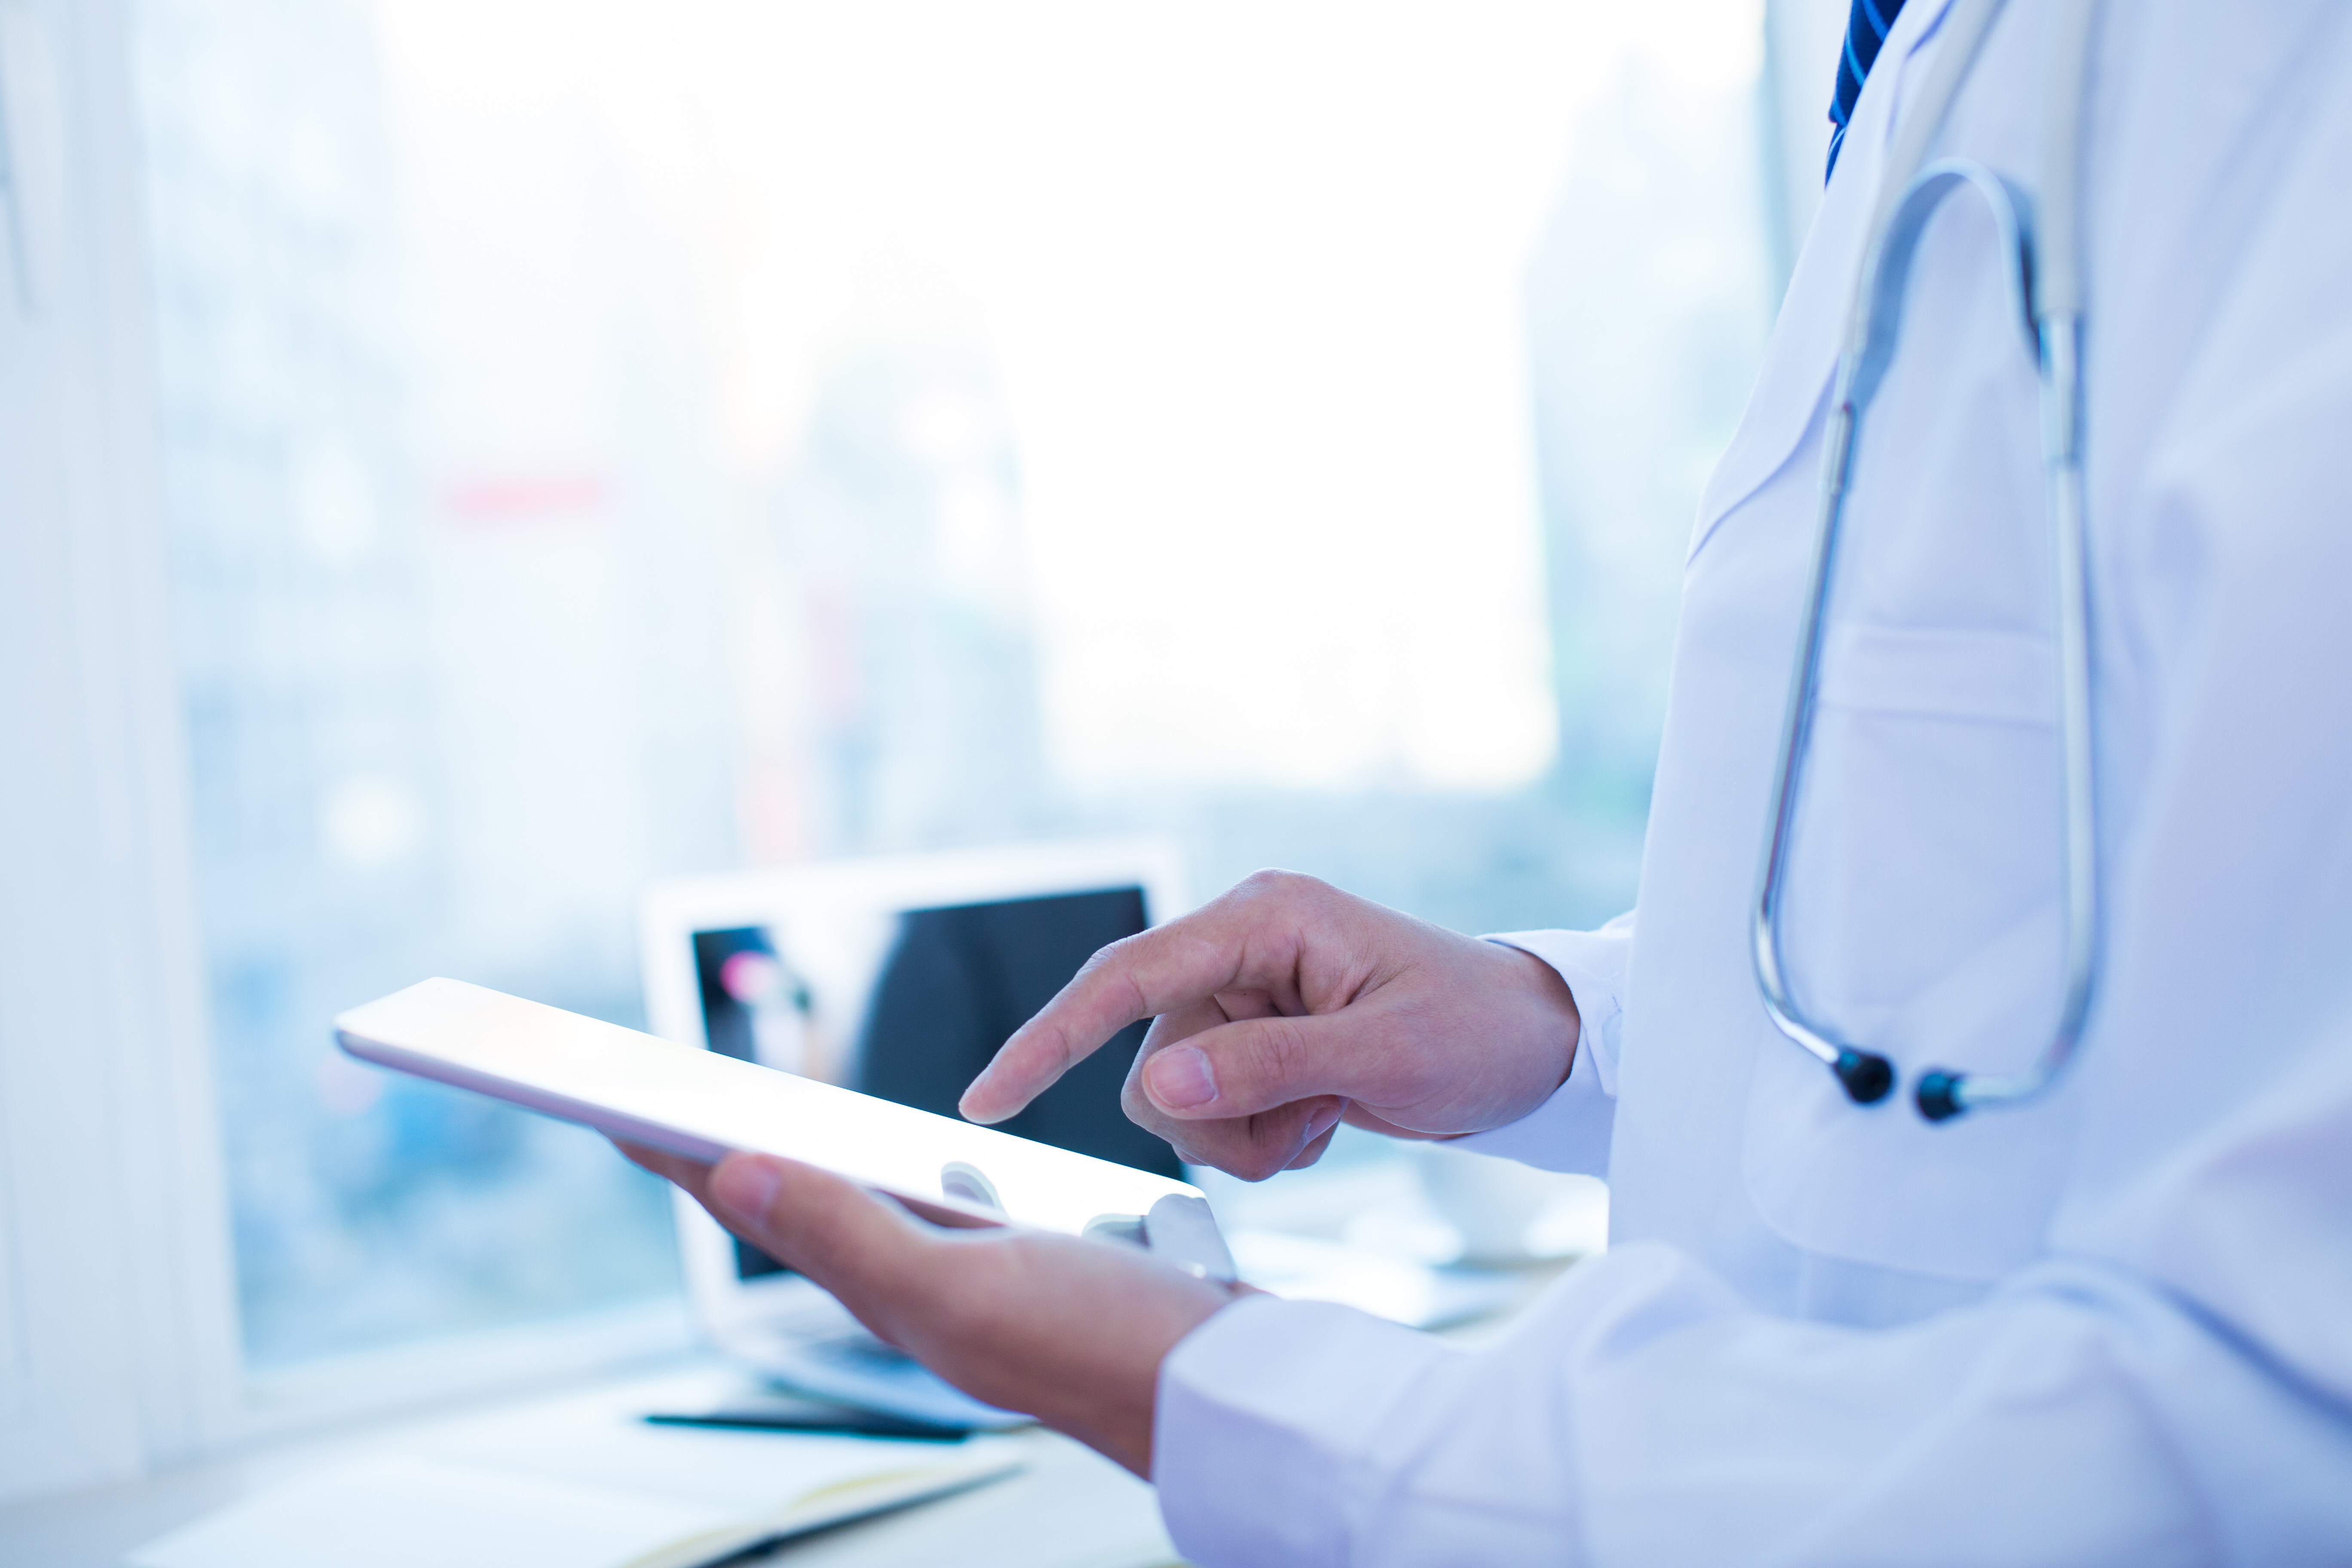 My Hospital Team Purchased a Cardio Server System! Now What Happens?